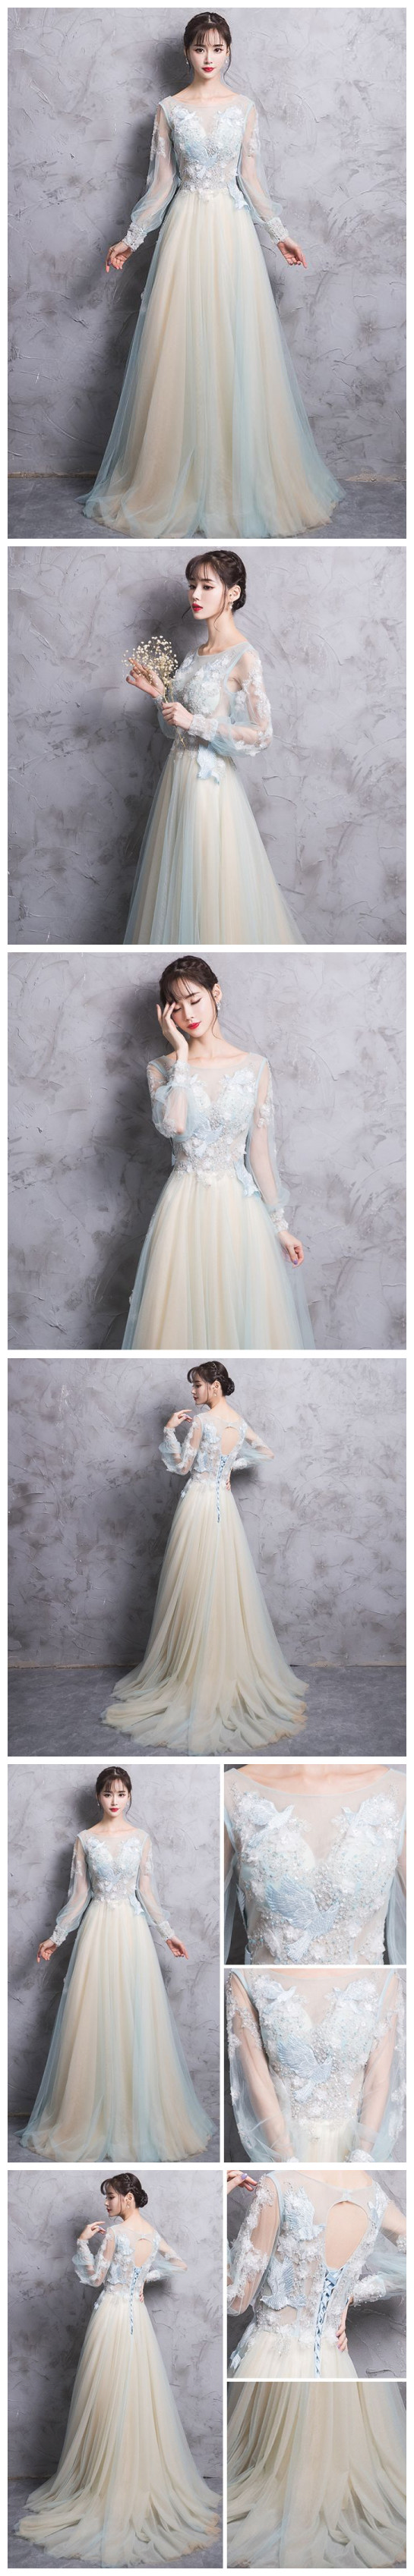 Chic long sleeve prom dress aline scoop applique tulle prom dress